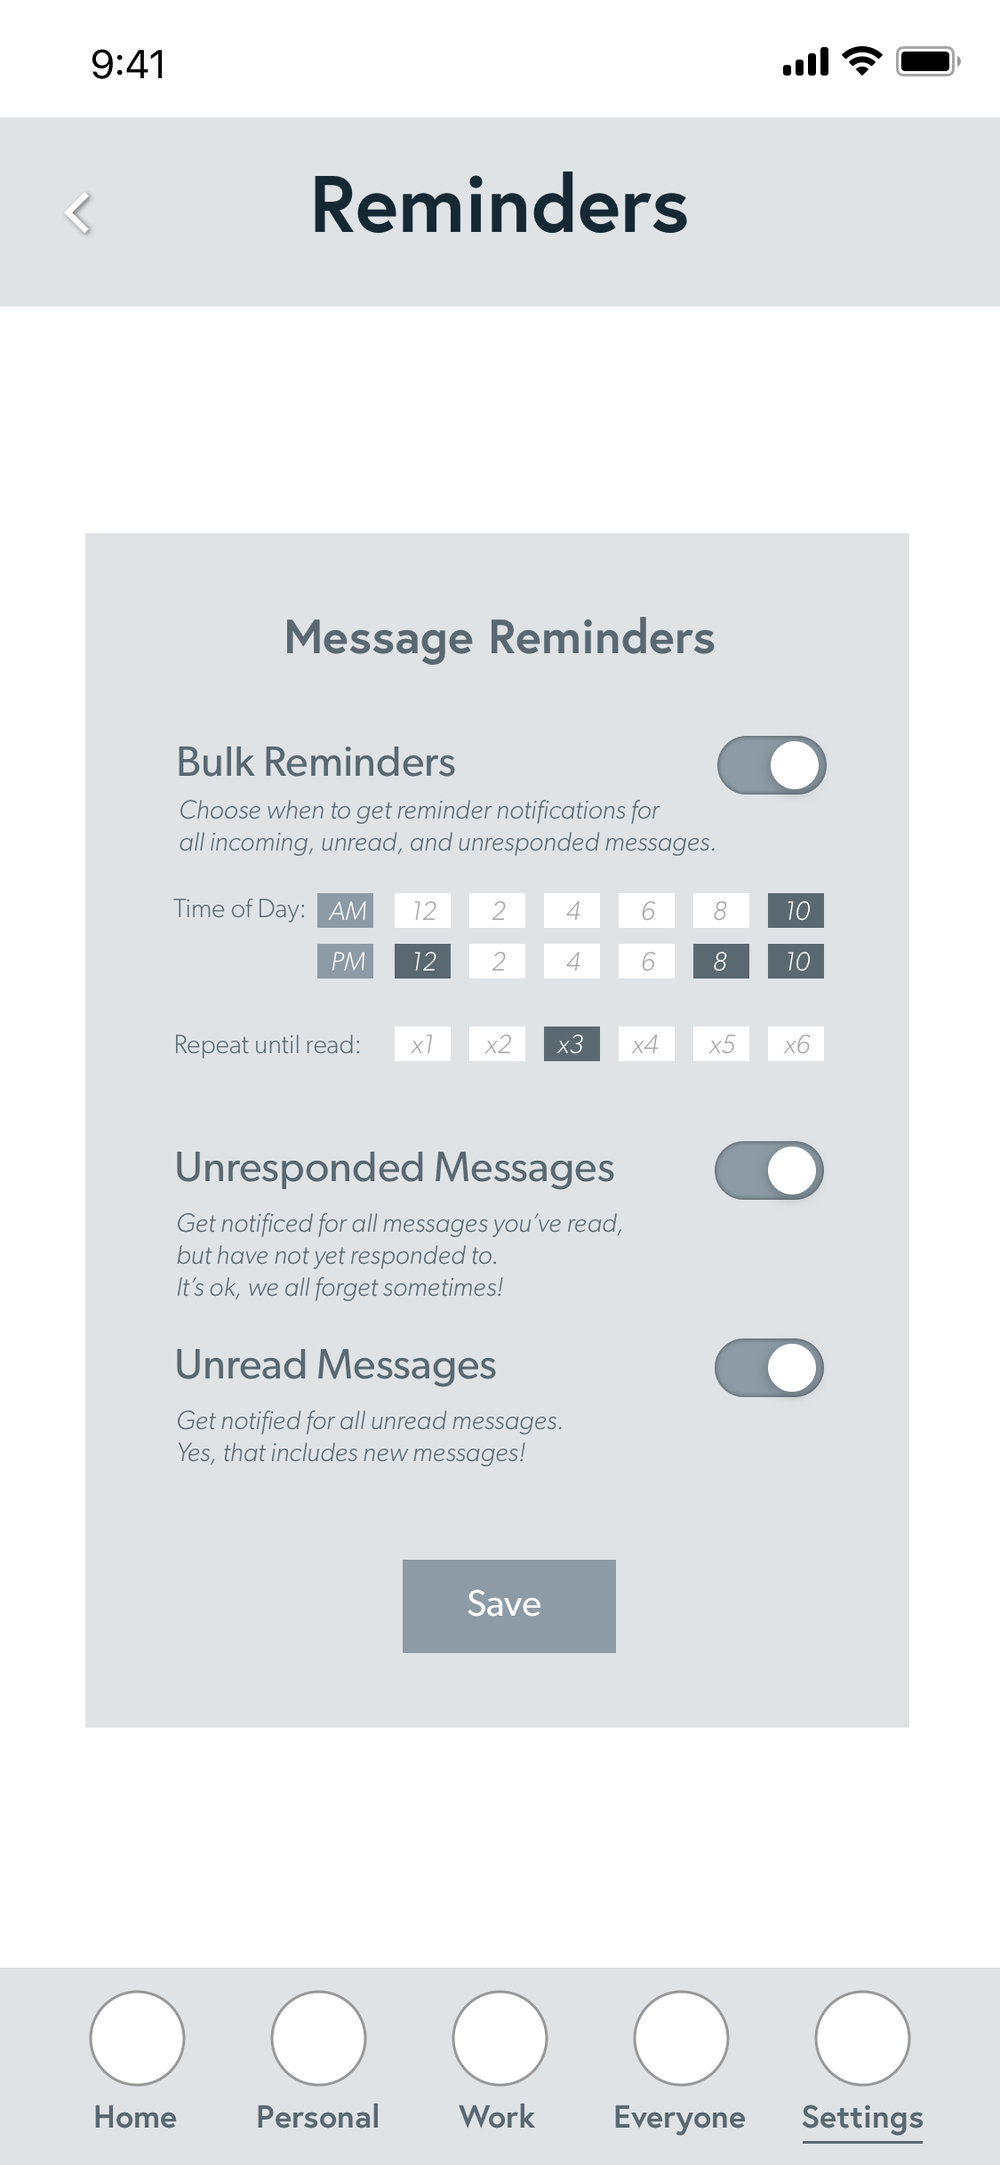 The notification settings are one of the main components of this messaging app. One key factor is the bulk reminder.